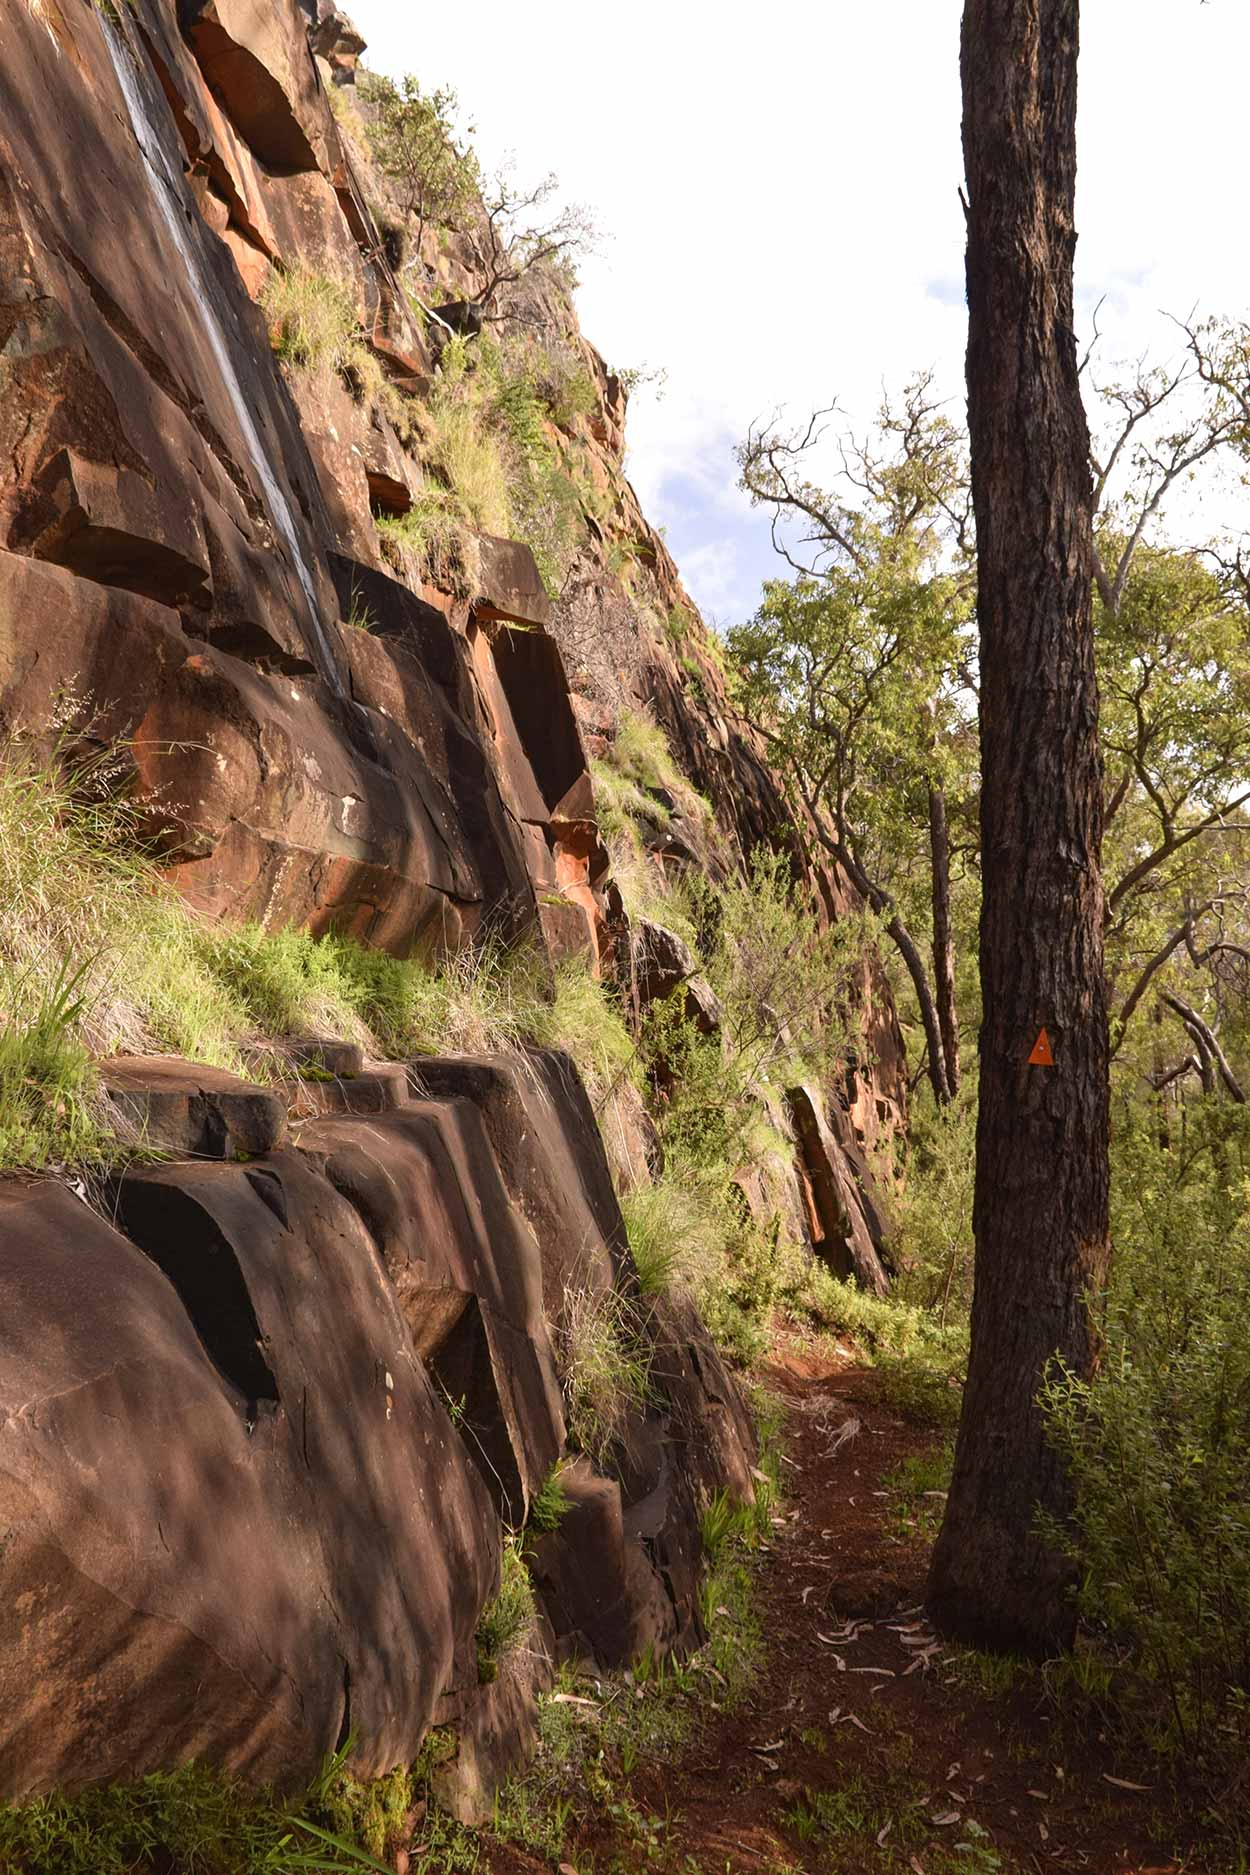 The cliff face on the Echidna Trail, Wungong Regional Park, Perth, Western Australia